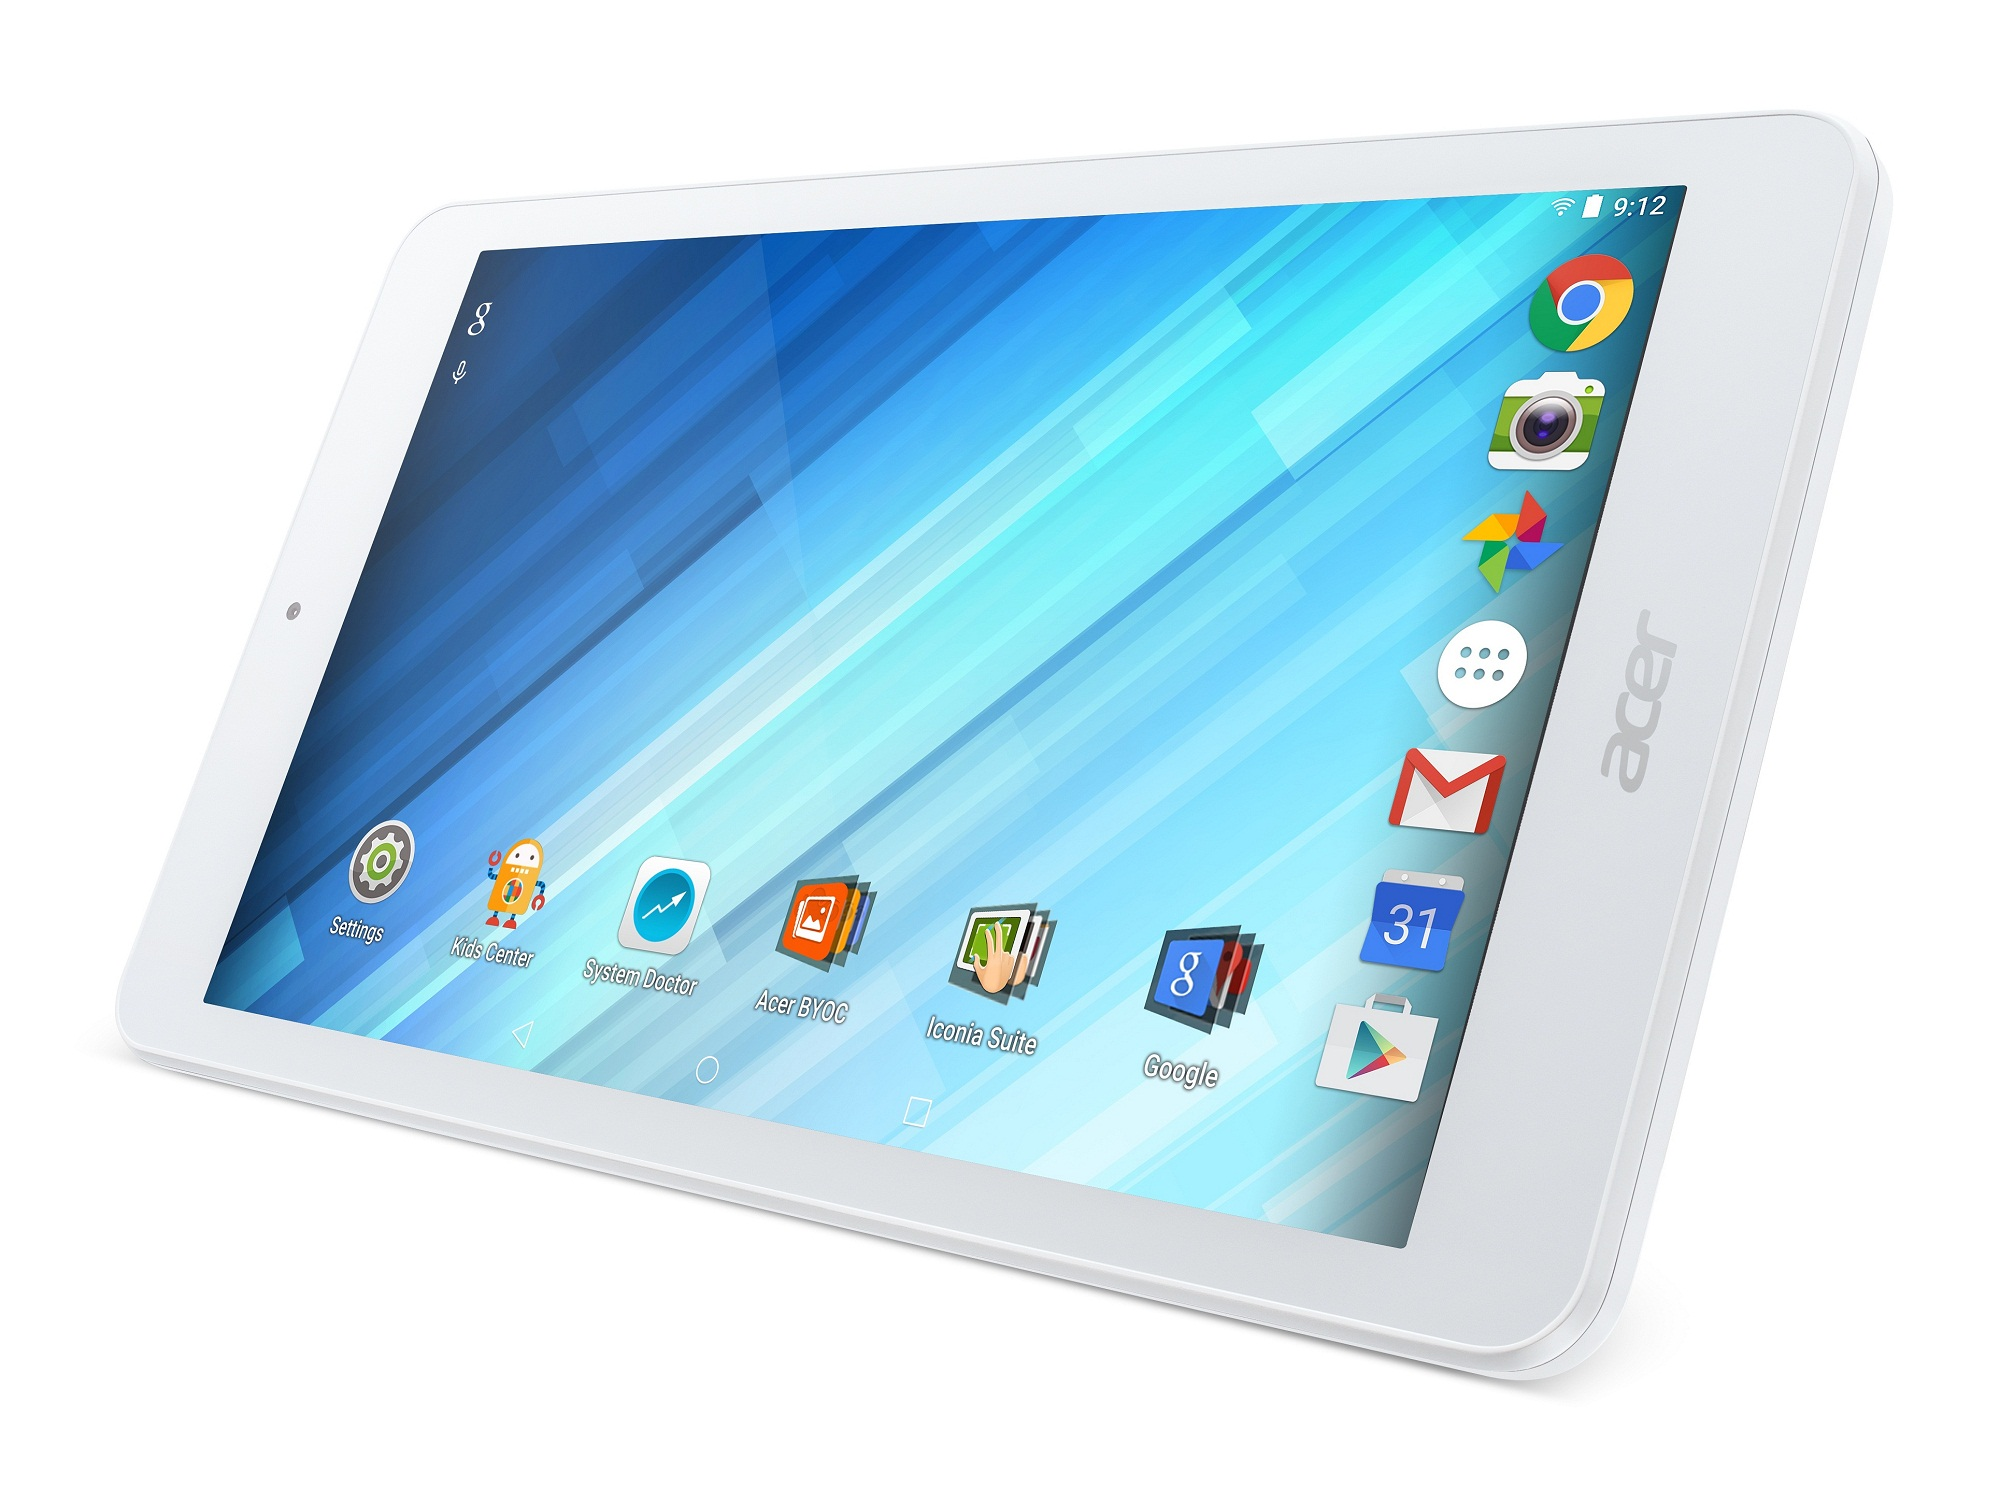 CES 2016: Acer Launches Iconia One 8 (B1-850) Tablet With ...